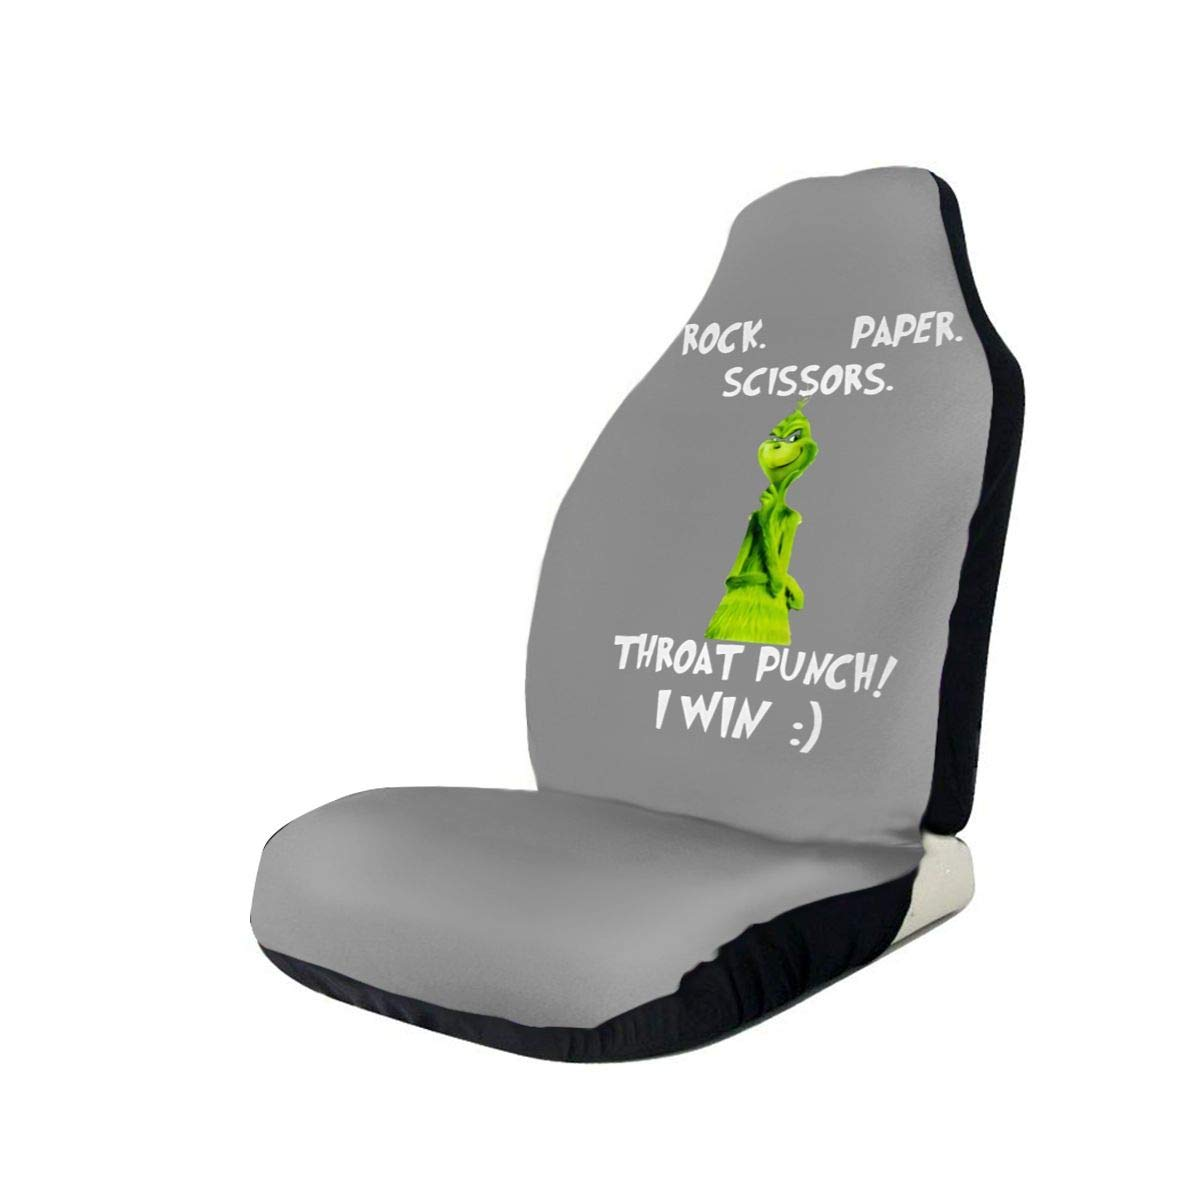 The Grinch Rock Paper Scissors Throat Punch I Win Classic Car Seat Covers Car Seat Protector Covers ,Fit Most Cars, Sedan, SUV,Van